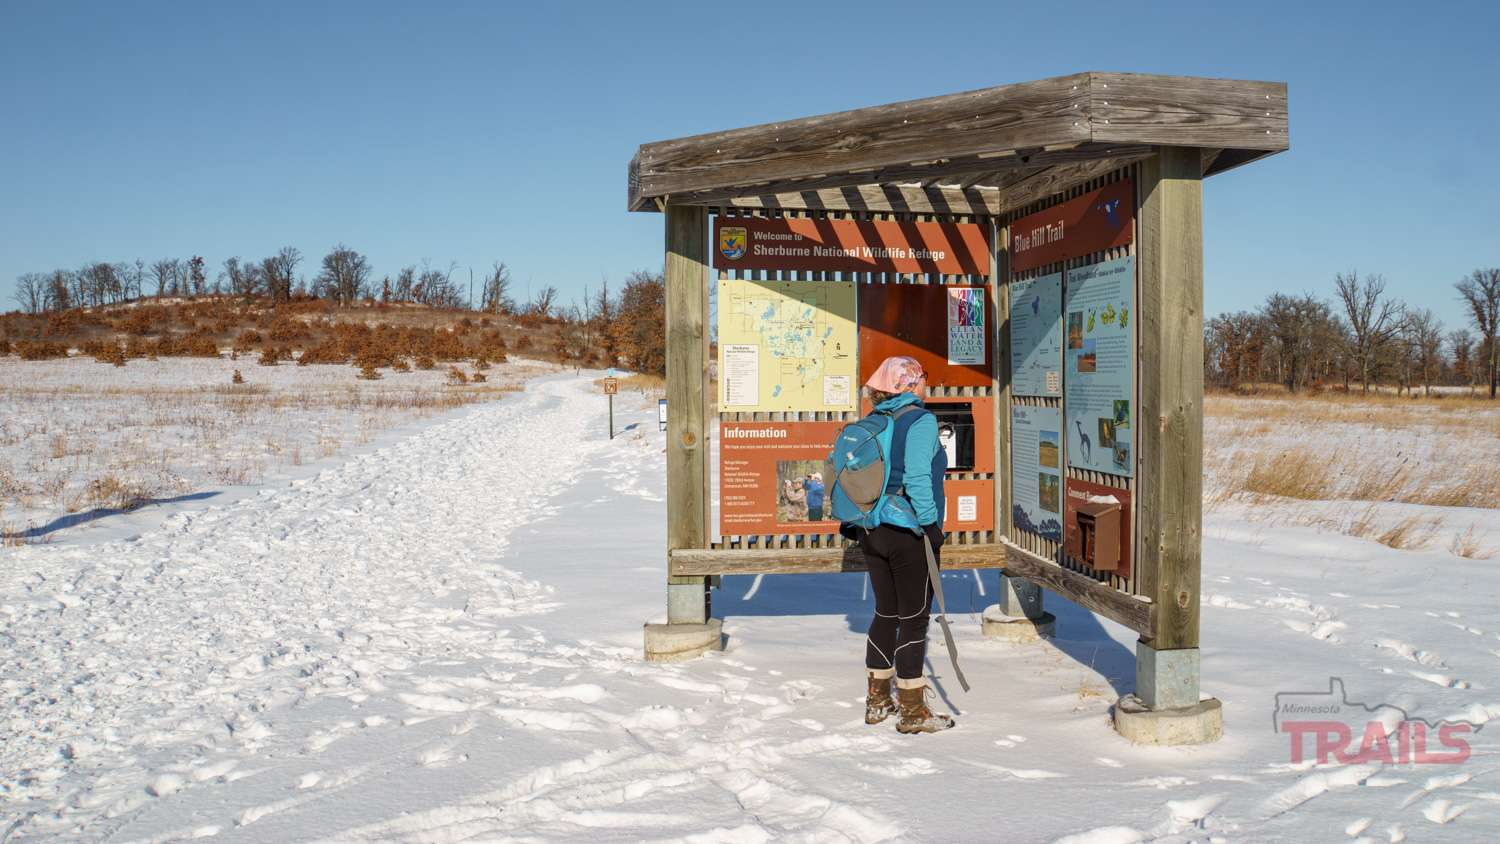 A woman studies an outdoor interpretive kiosk in the winter